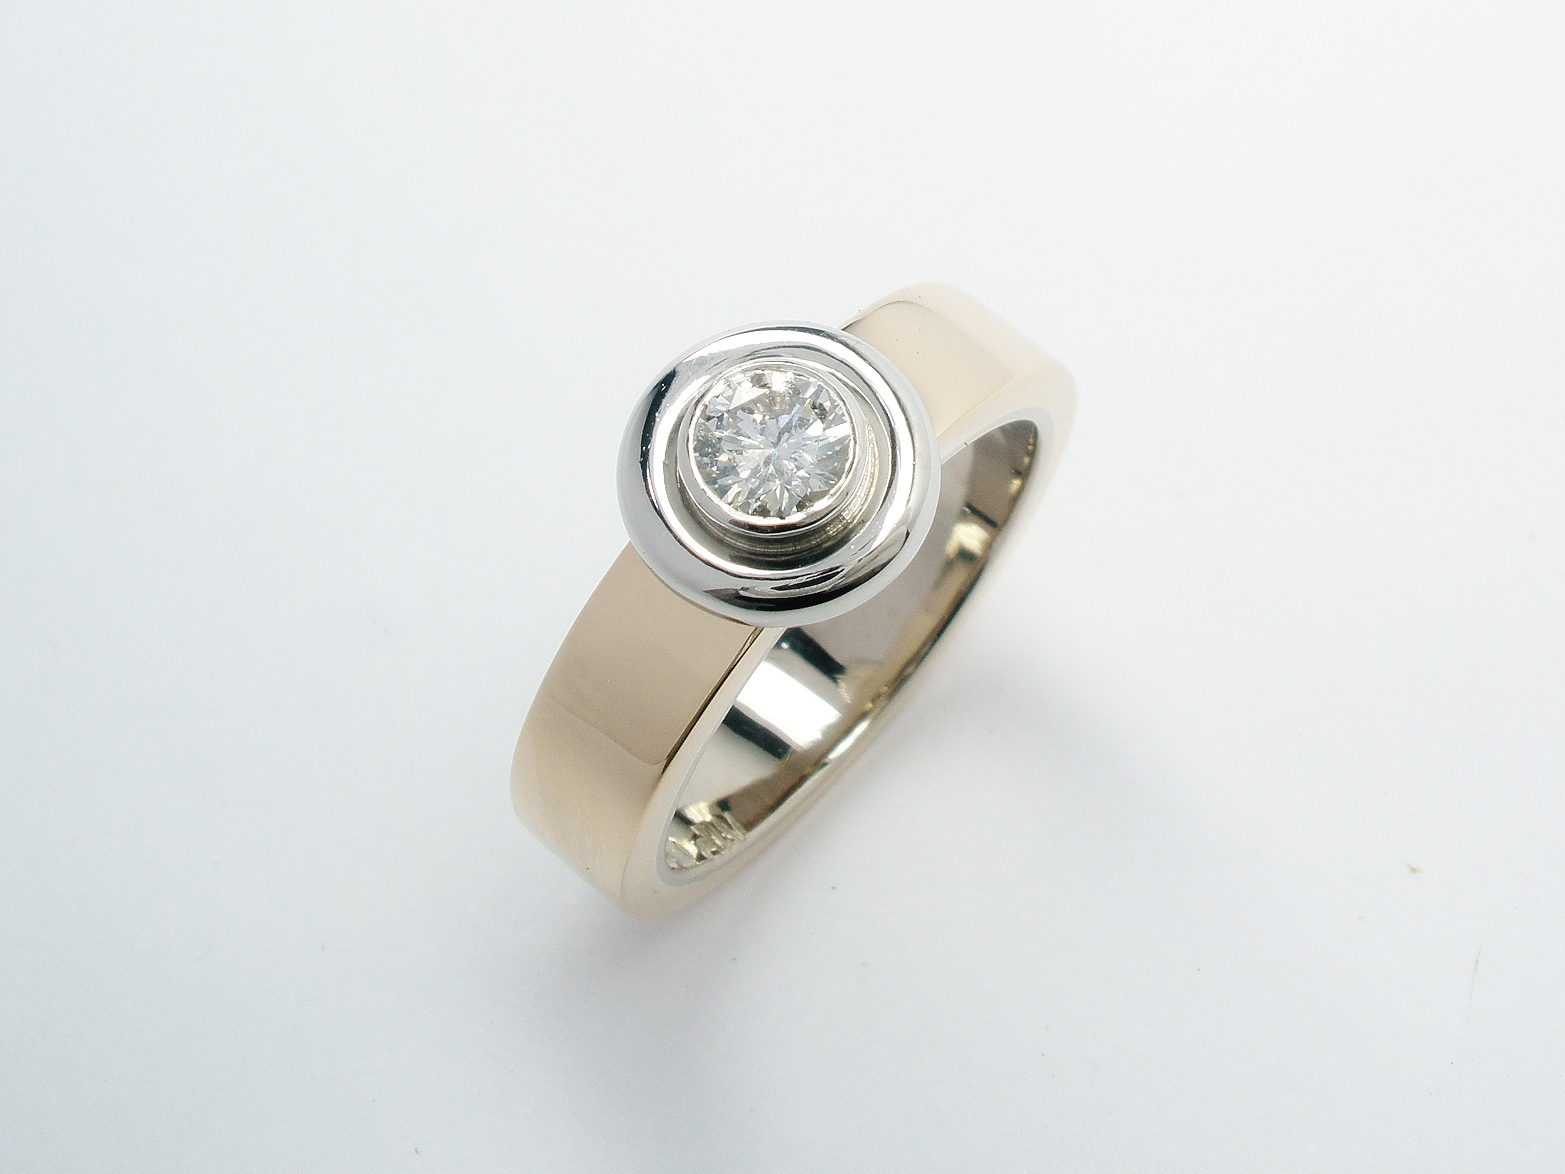 A single stone round brilliant cut diamond 'Doughnut' style ring mounted in 9ct. yellow gold and platinum.